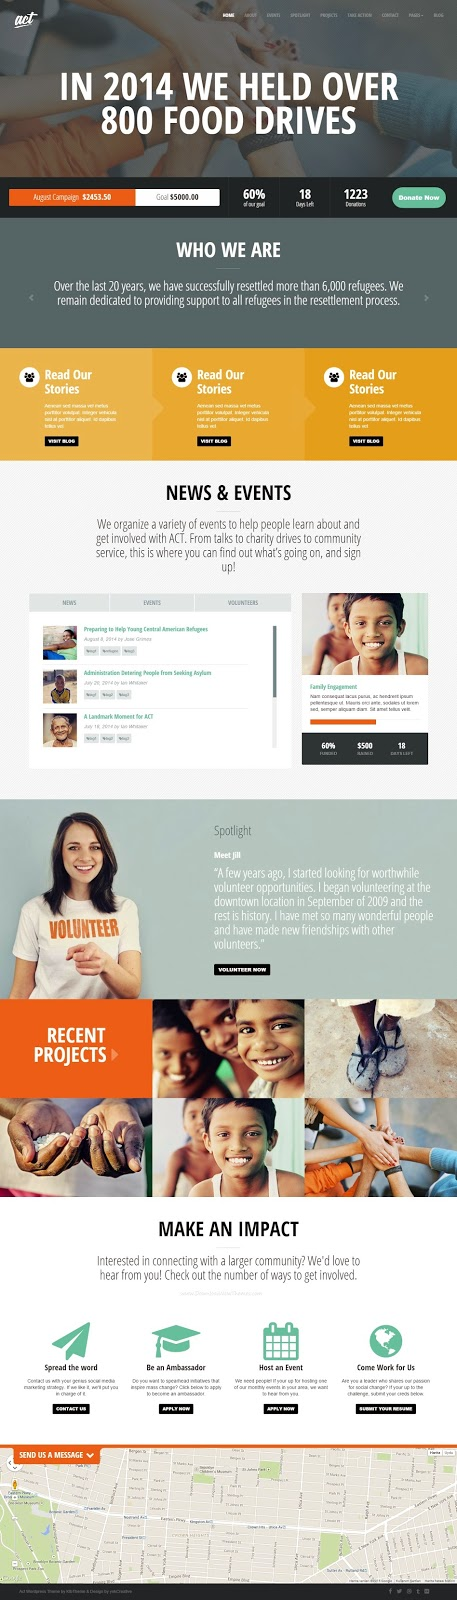 Premium Nonprofit Charity WordPress Theme 2015